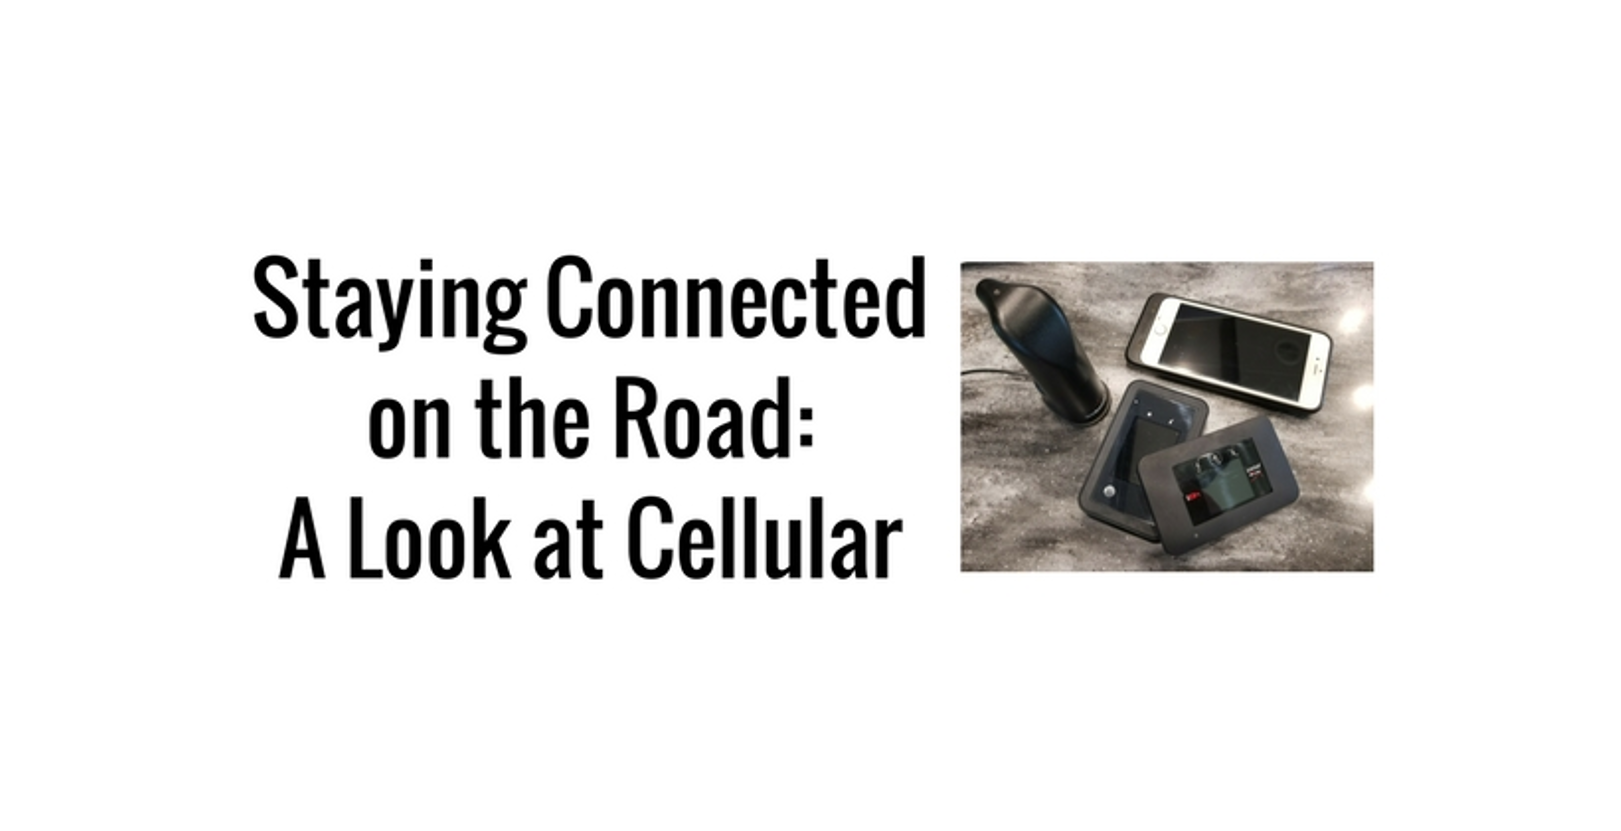 Staying Connected on the Road: A Look at Cellular